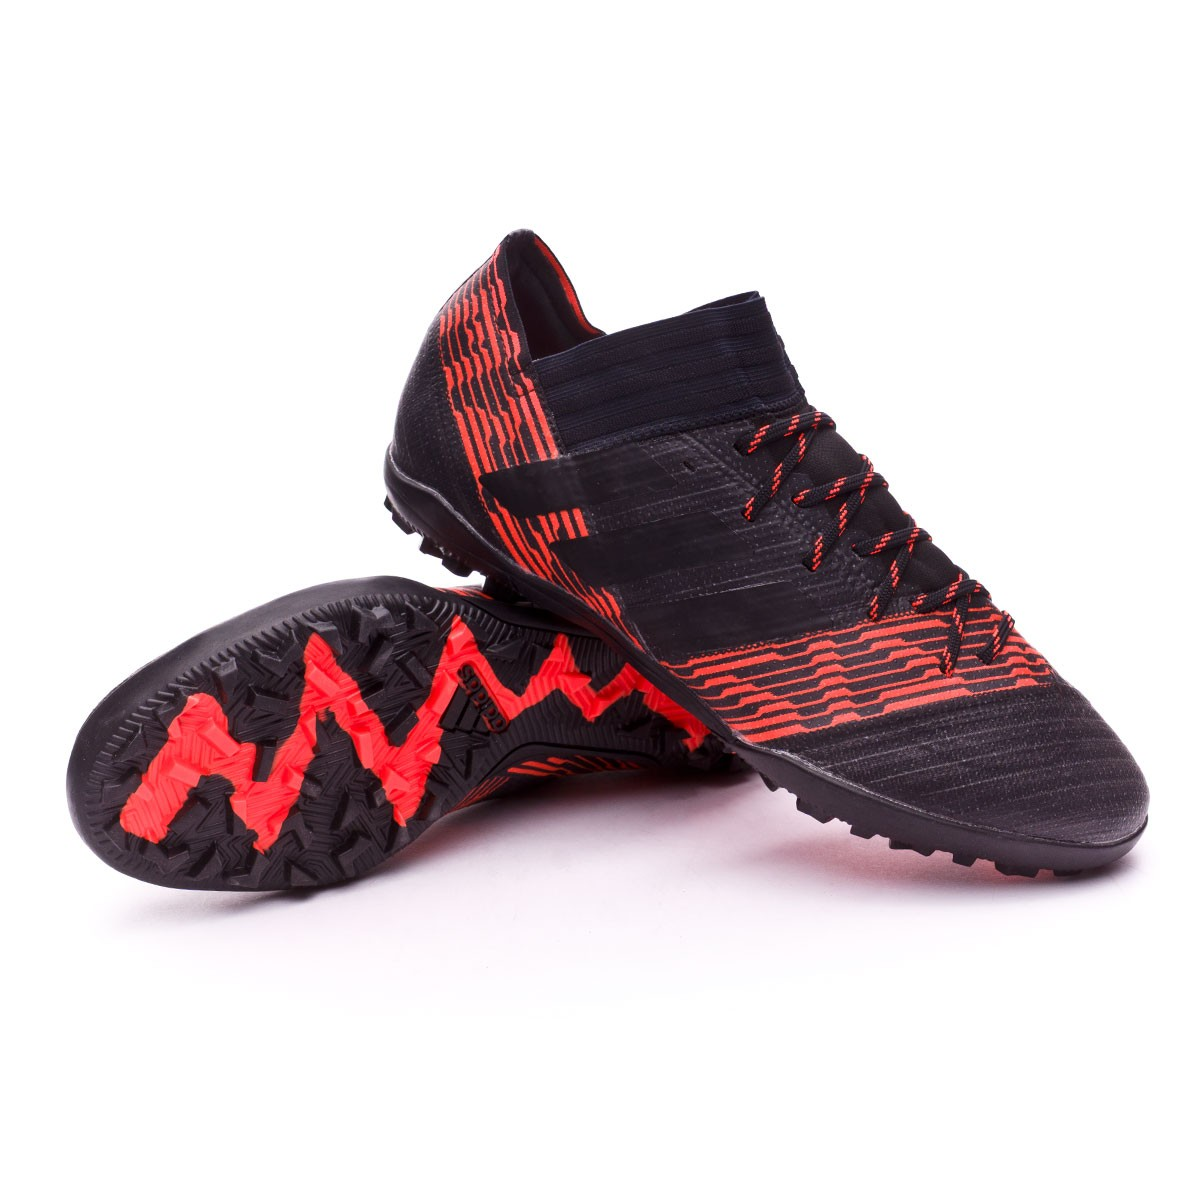 on sale f3fe8 defa0 adidas Nemeziz Tango 17.3 Turf Football Boot. Core black-Solar red ...